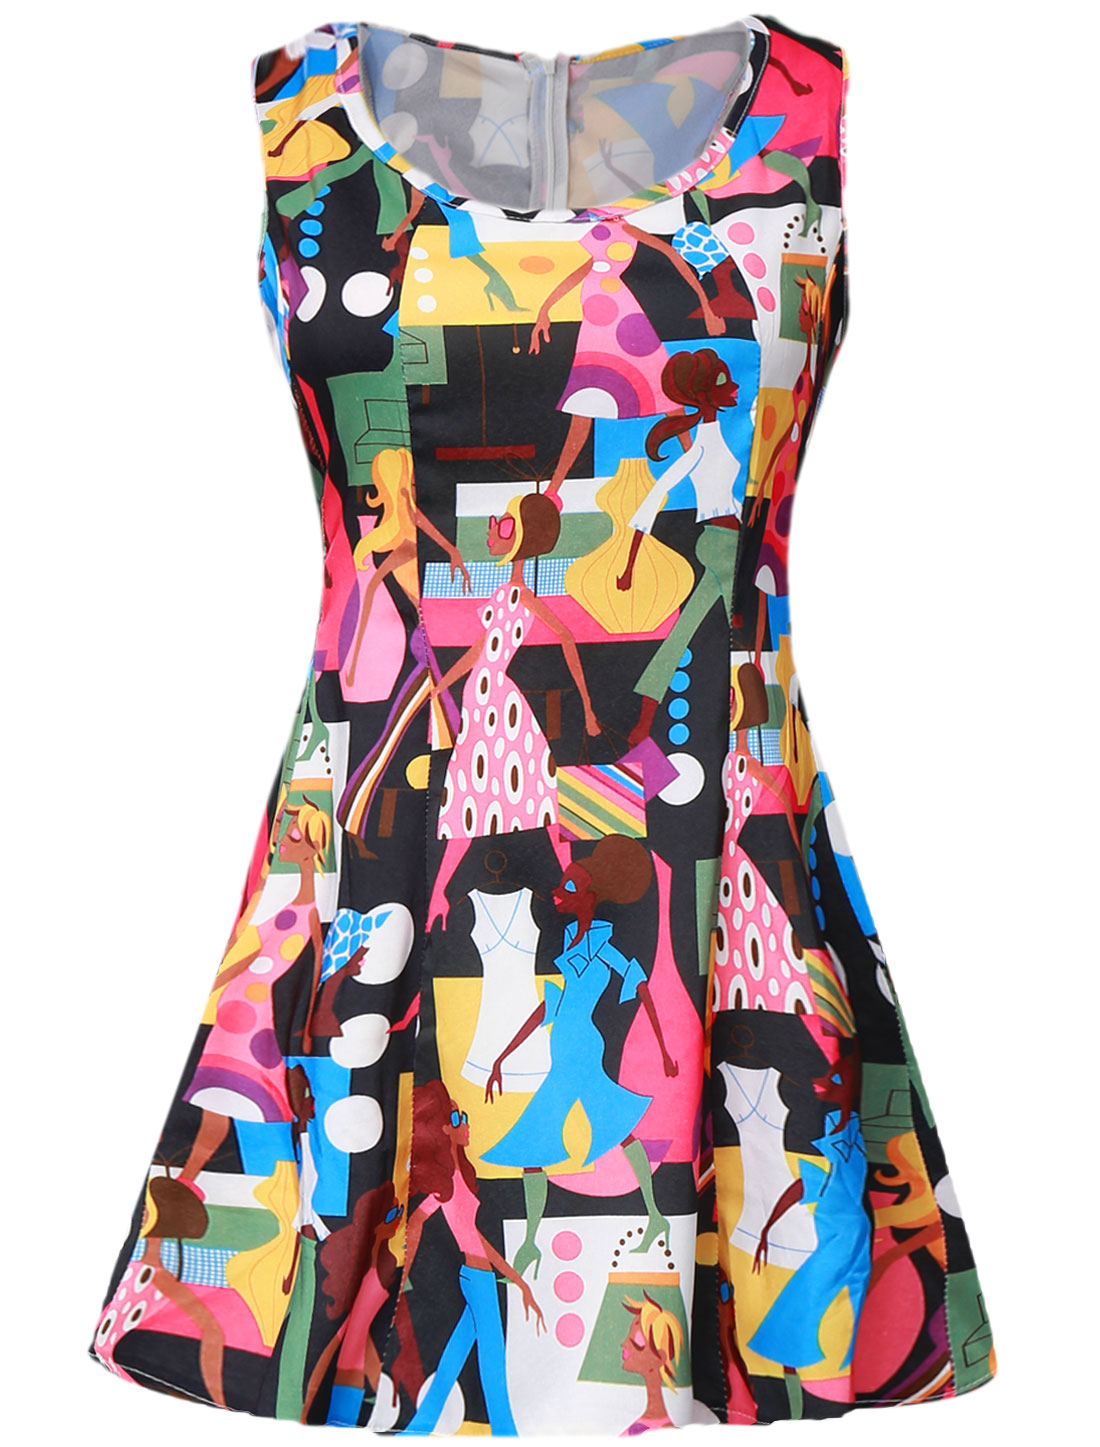 Lady Cartoon Portrait Prints Concealed Zipper Back Skater Dress Black S